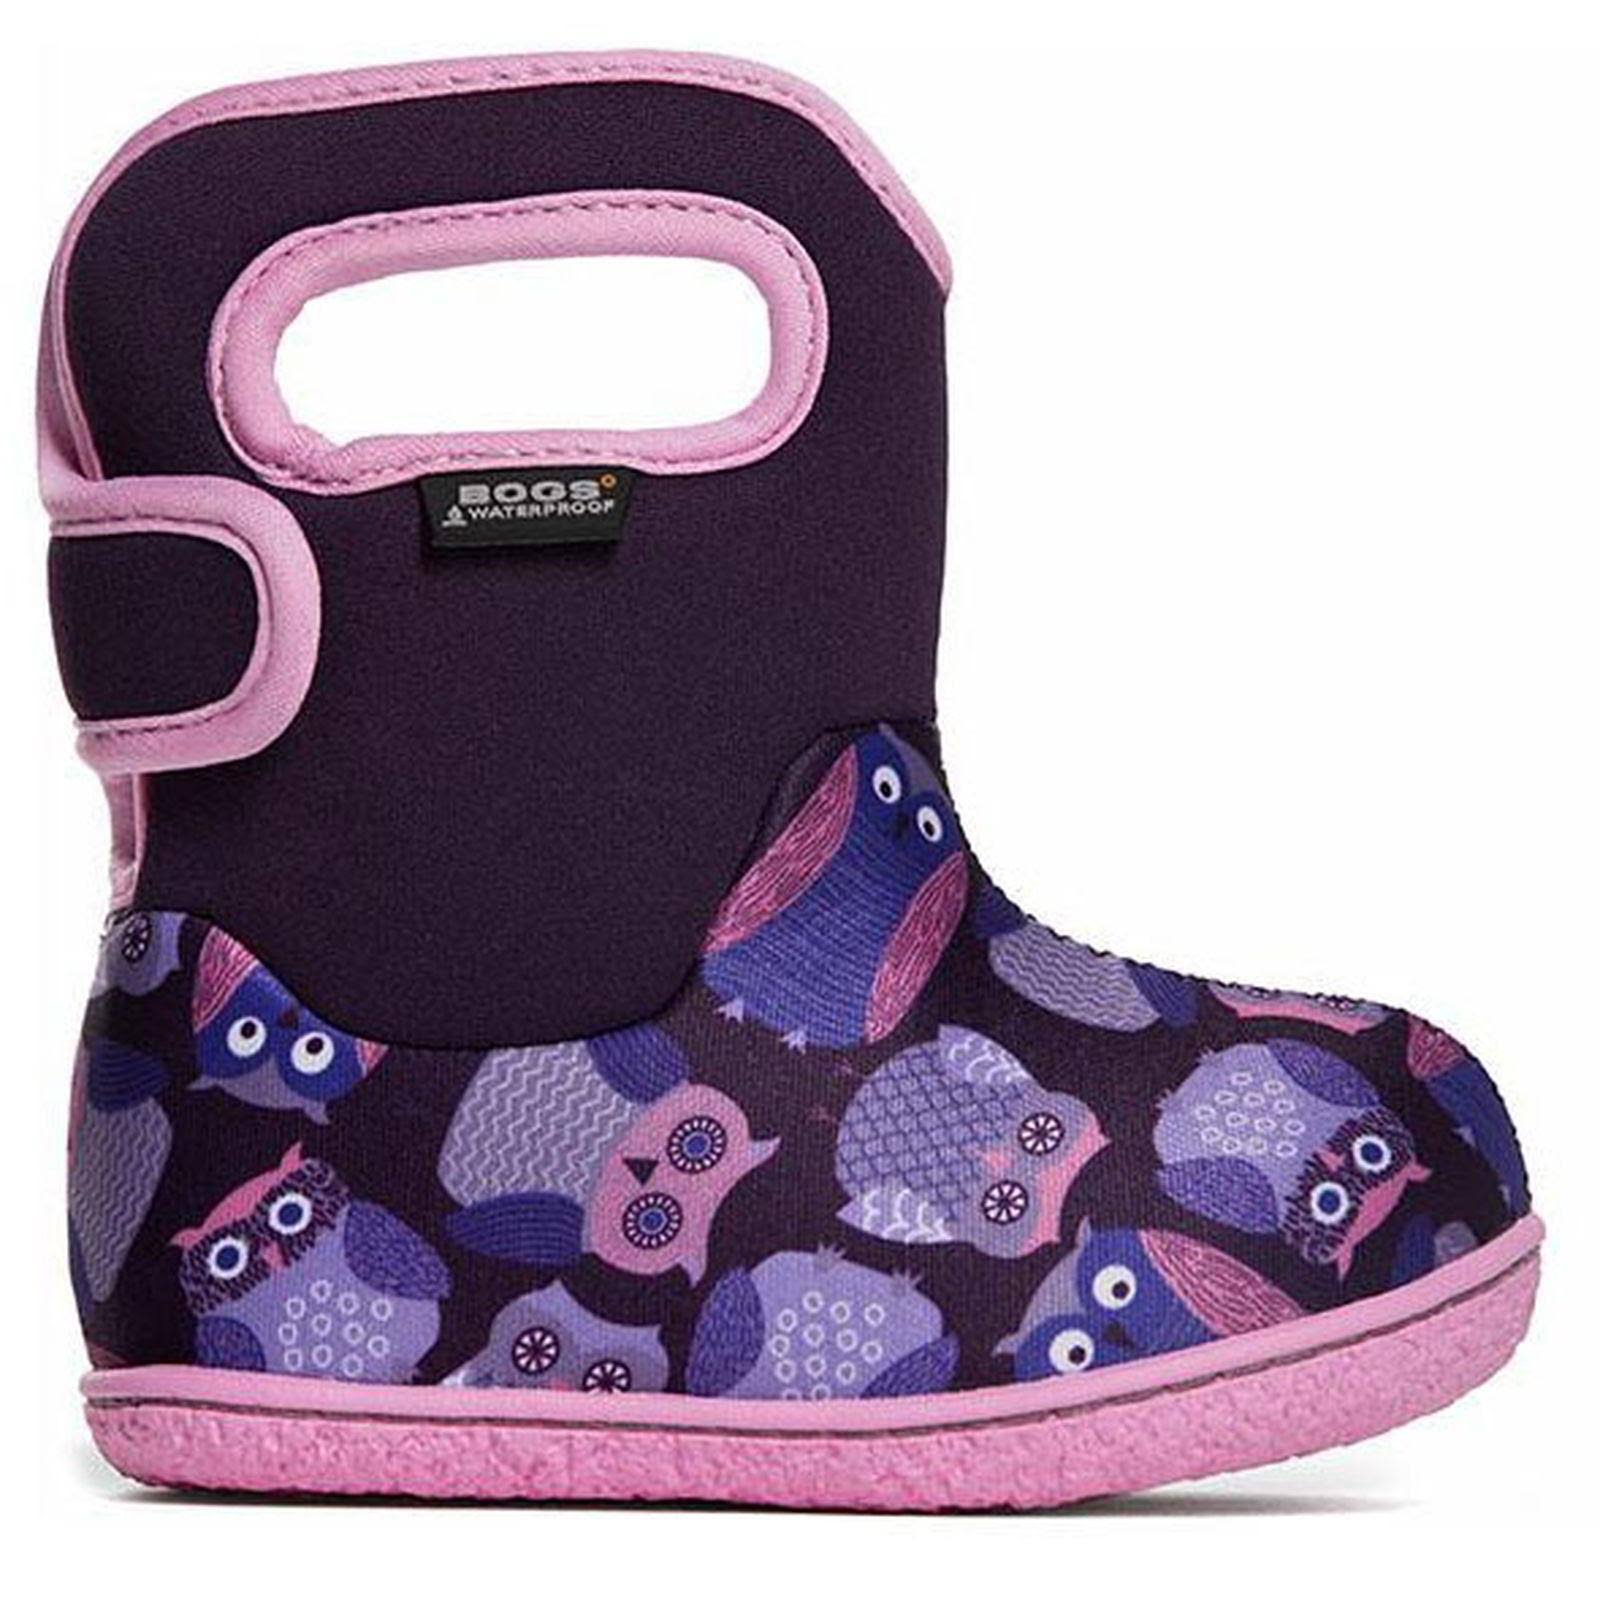 Bogs Infants Owls Waterproof Winter Boot - Toddler